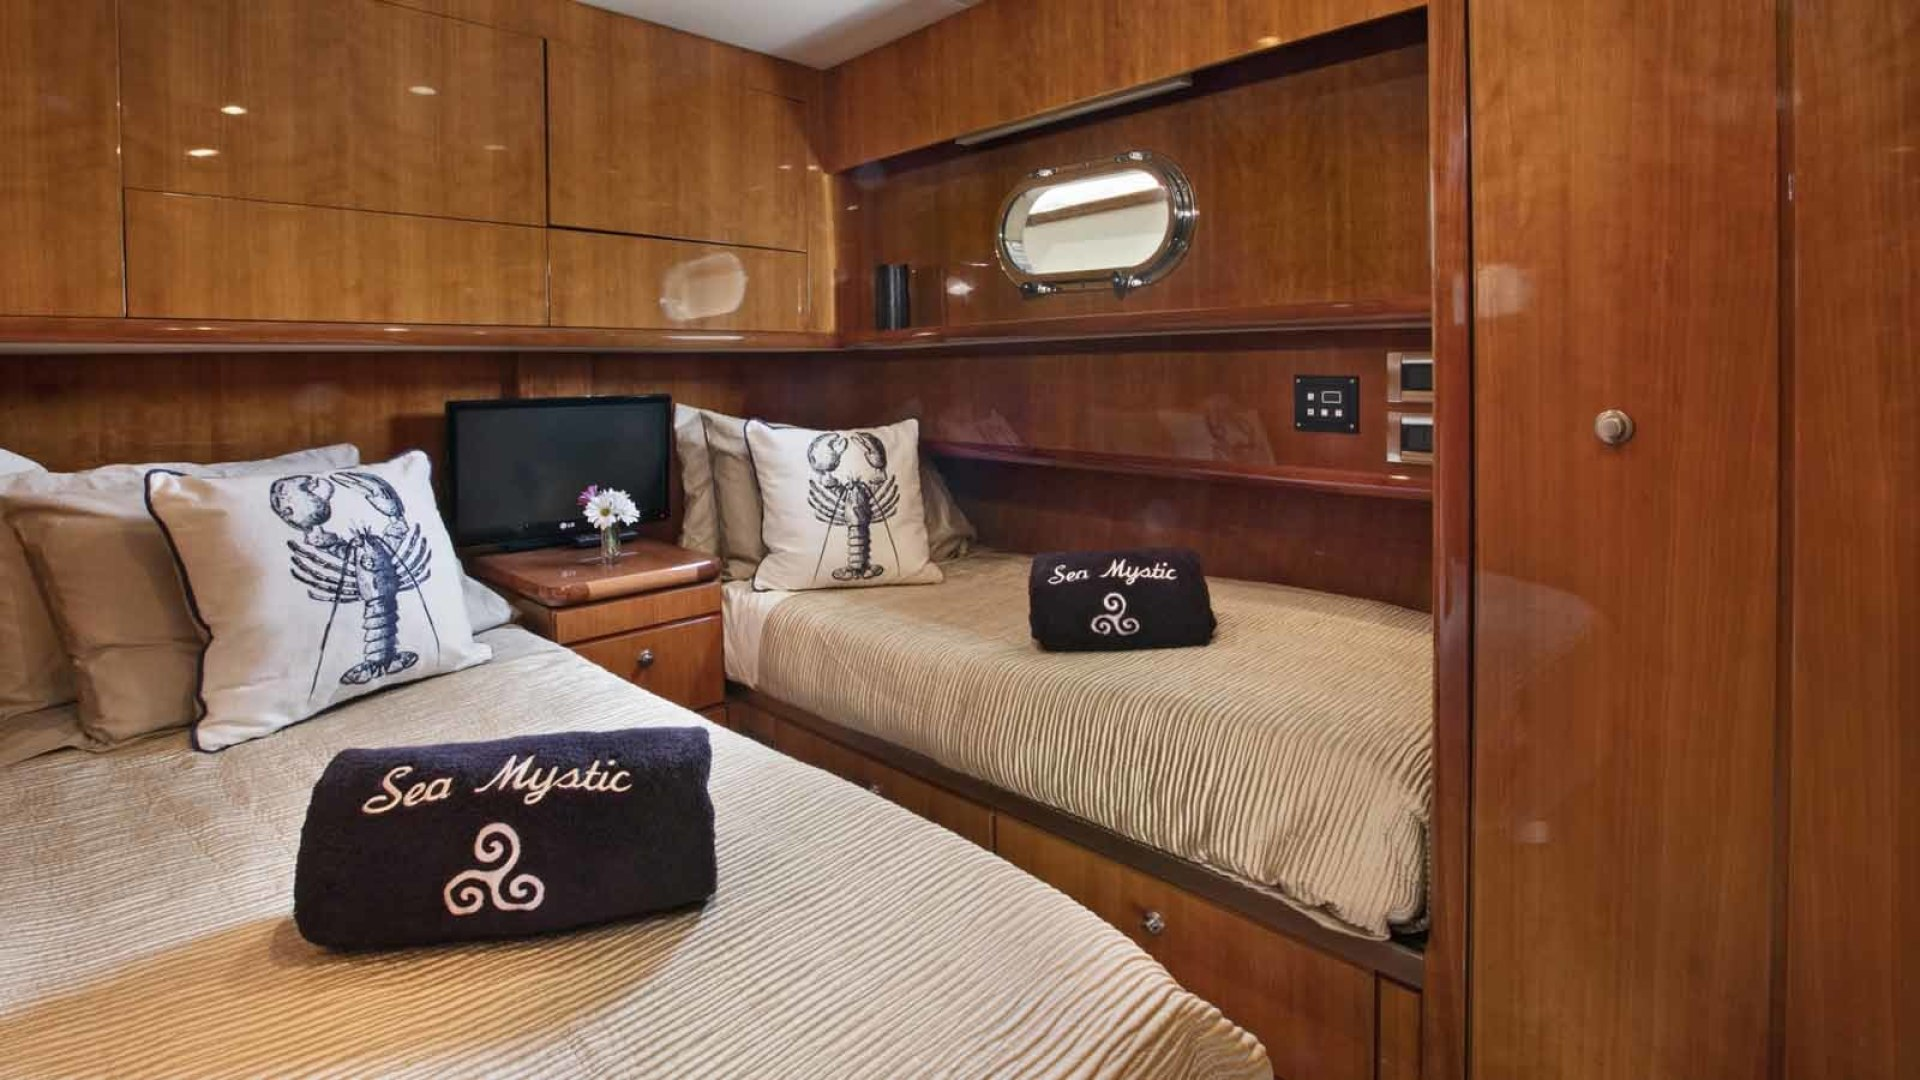 Queenship-Barretta 76 2004-SEA MYSTIC Fort Myers-Florida-United States-Guest Stateroom-1588113 | Thumbnail